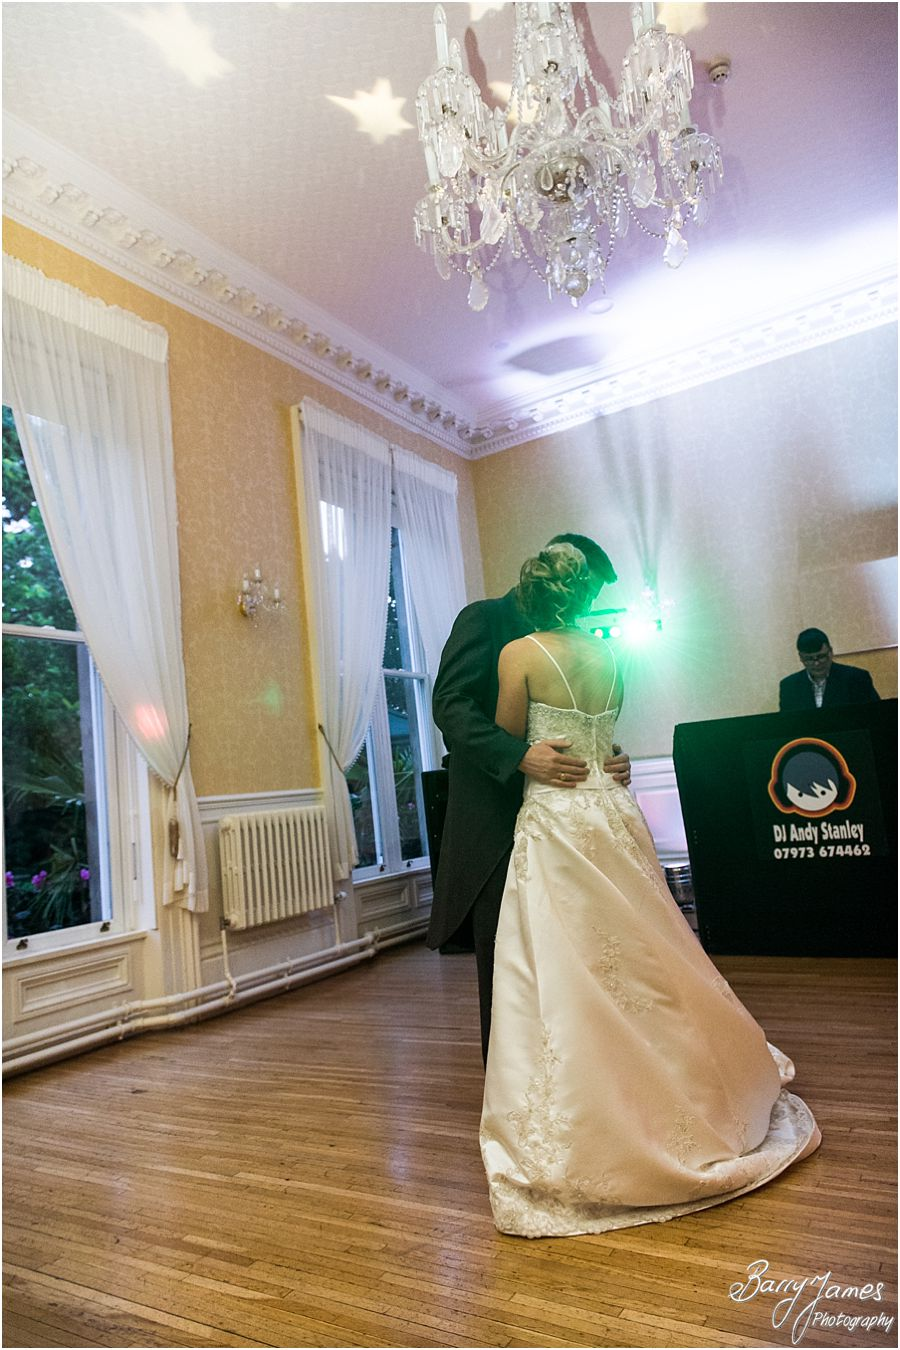 The first dance captured beautifully at Rodbaston Hall in Penkridge by Stafford Wedding Photographer Barry James